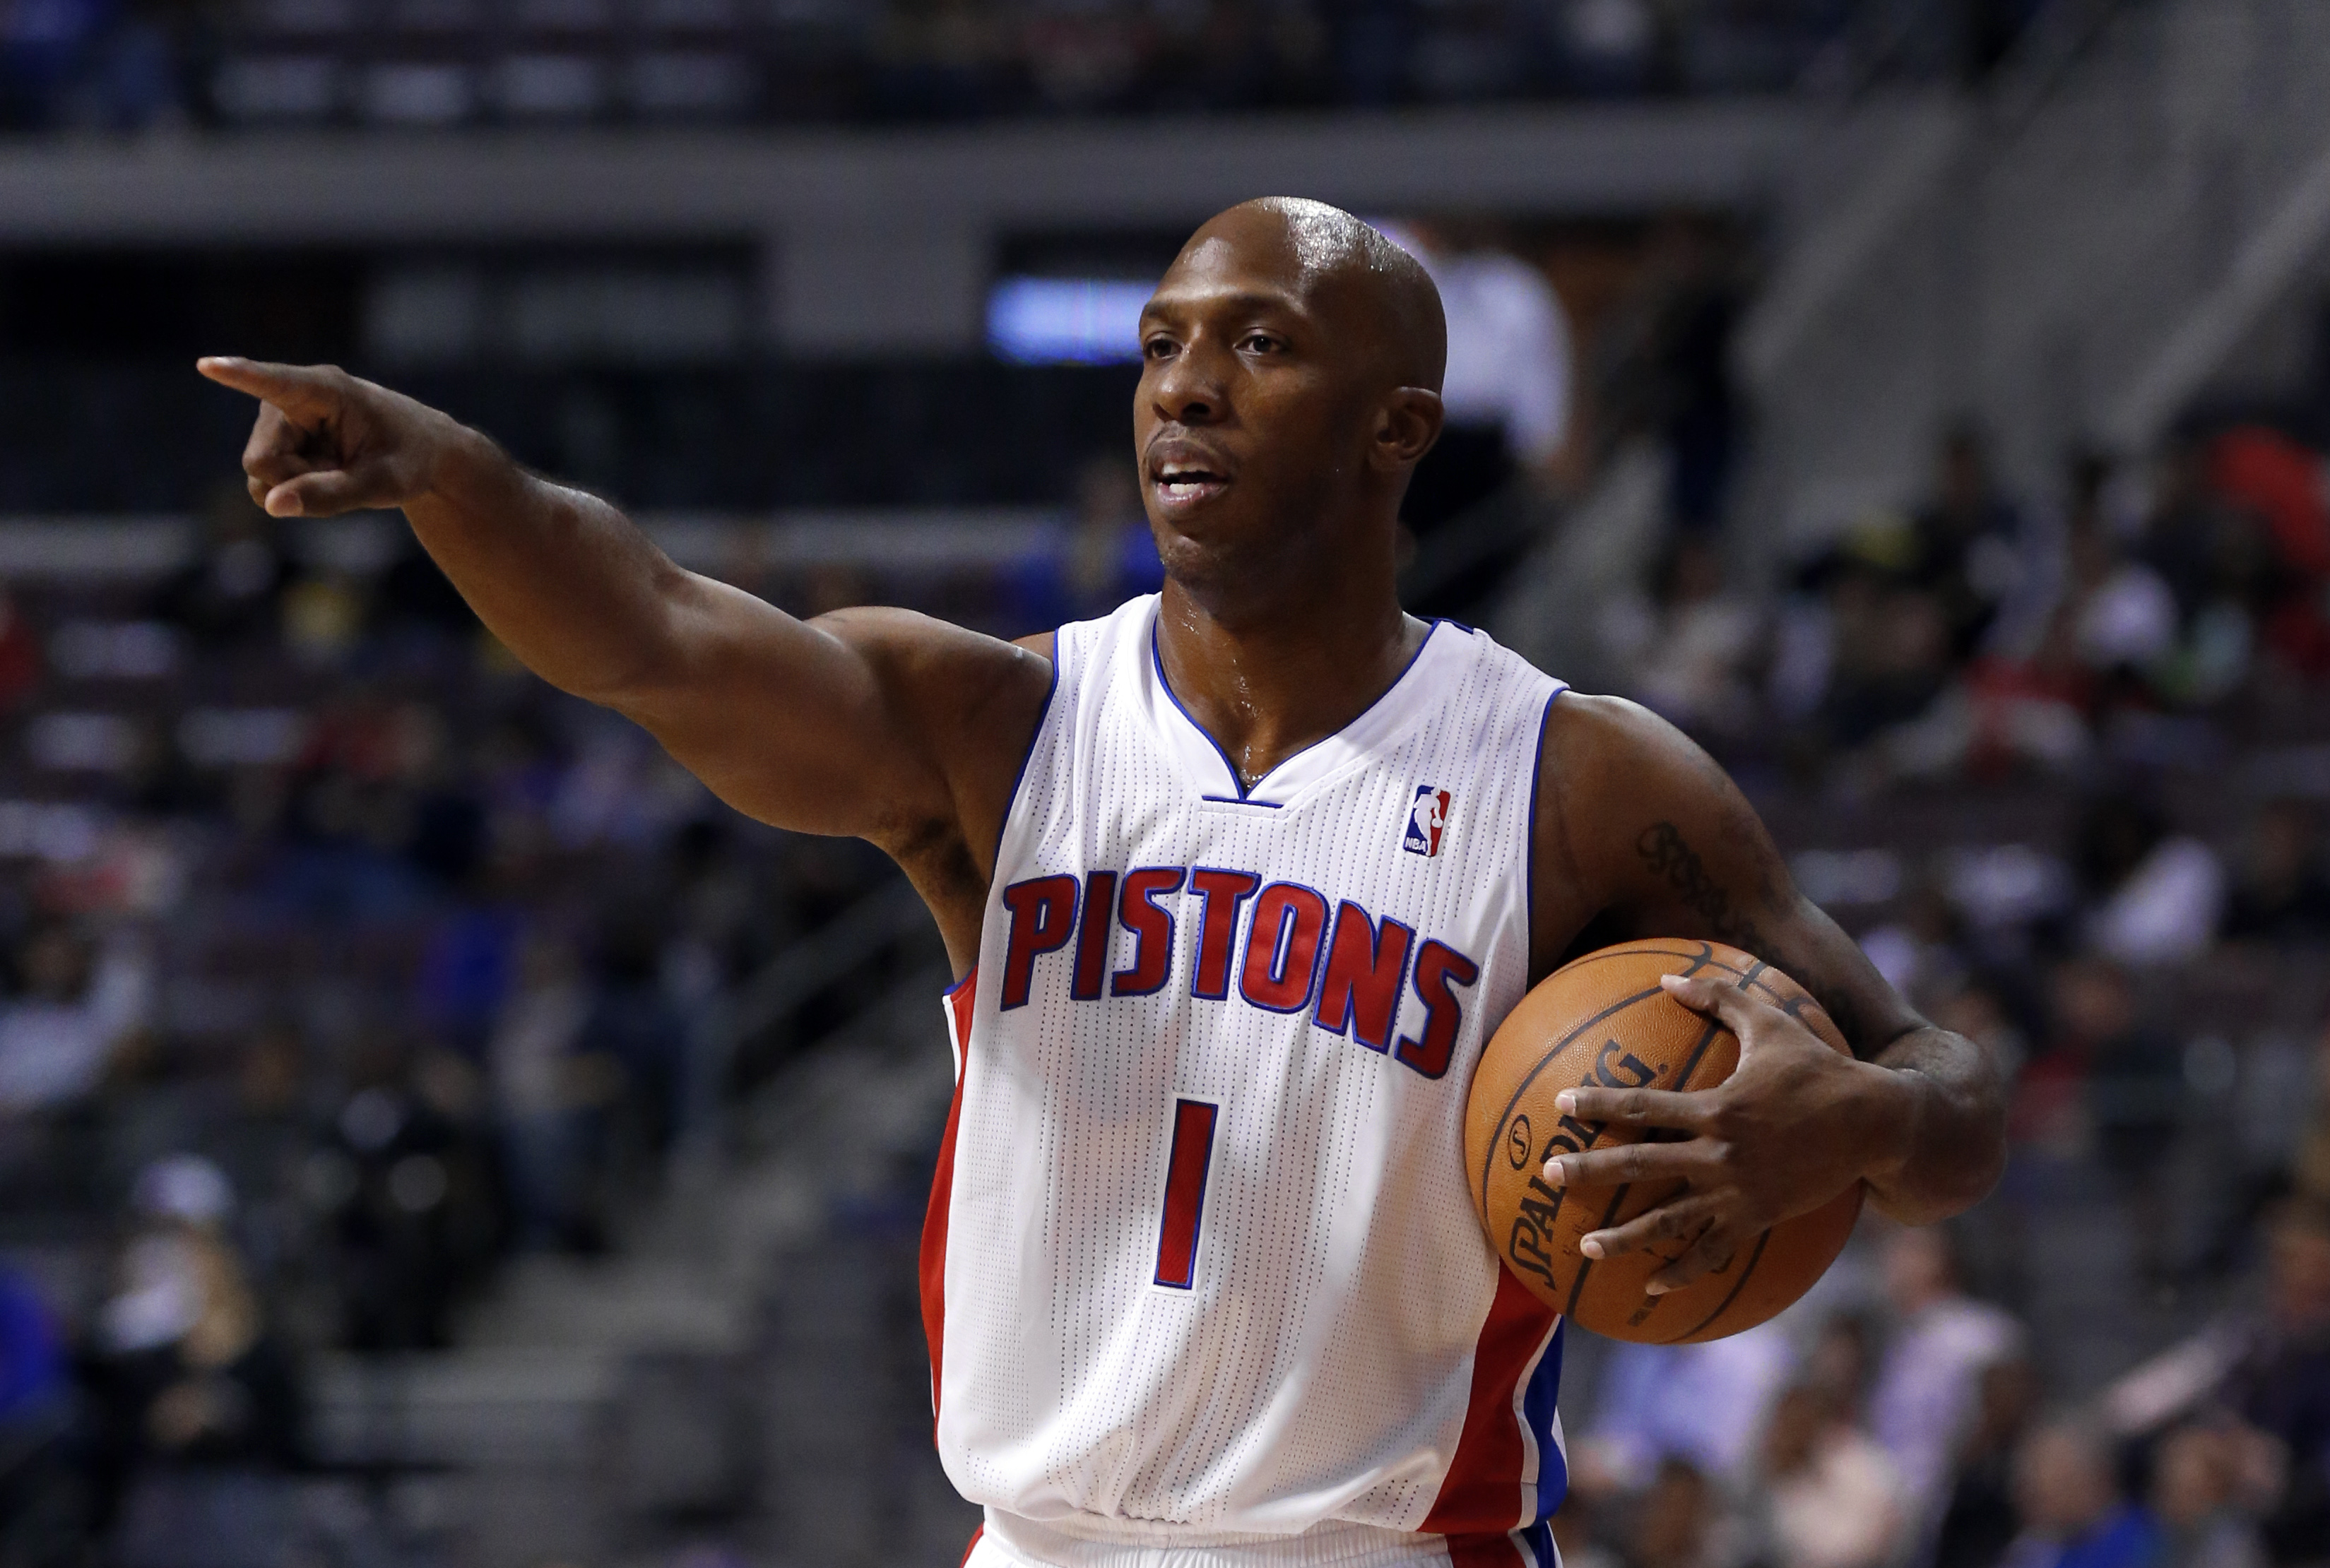 Photo: Chauncey Billups, Pistons (AP)